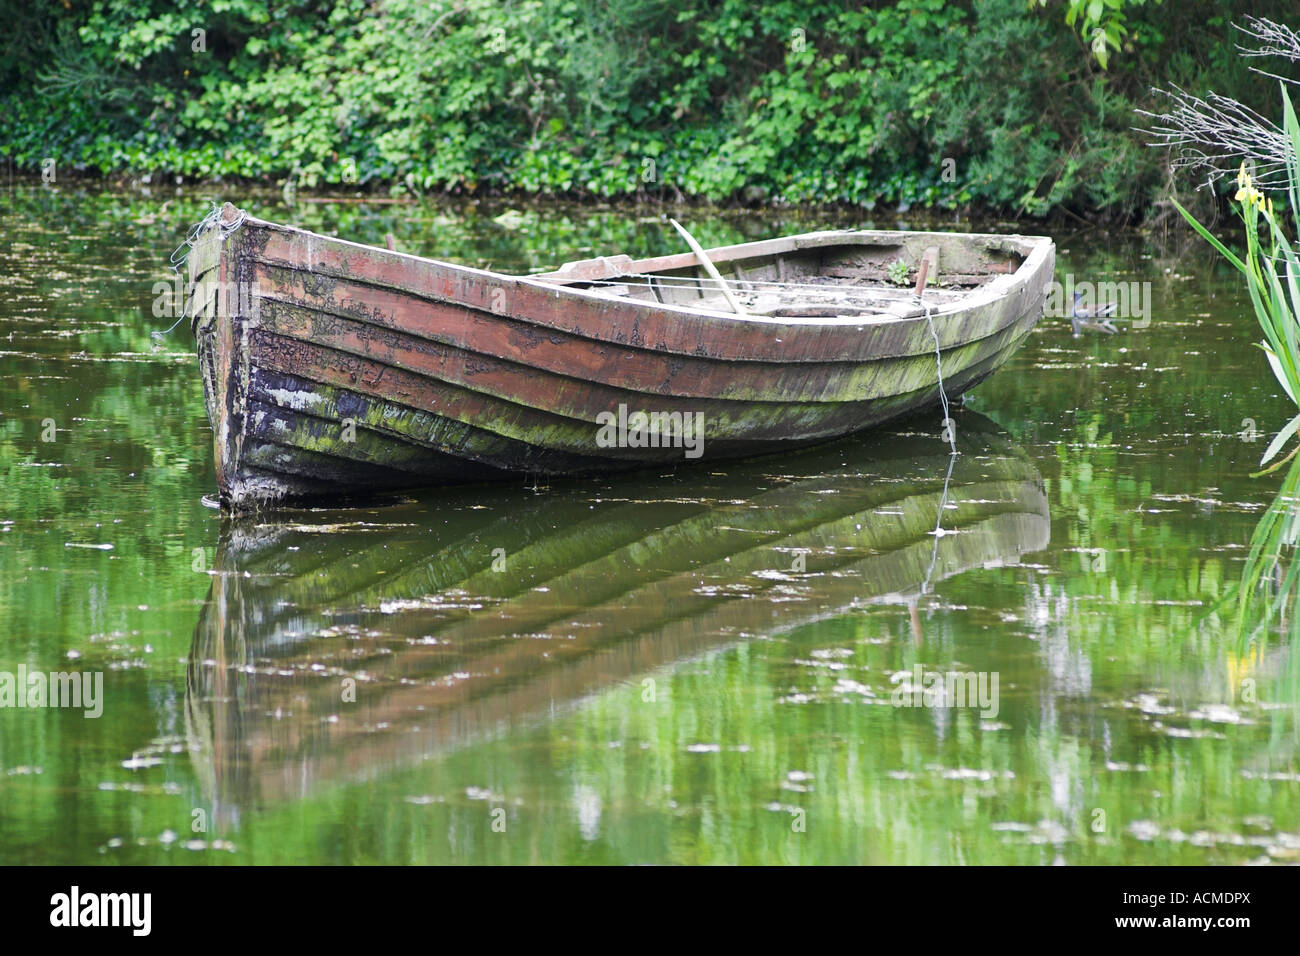 Rowing boat in a pond at Bunratty Folk Park Co Clare Ireland - Stock Image